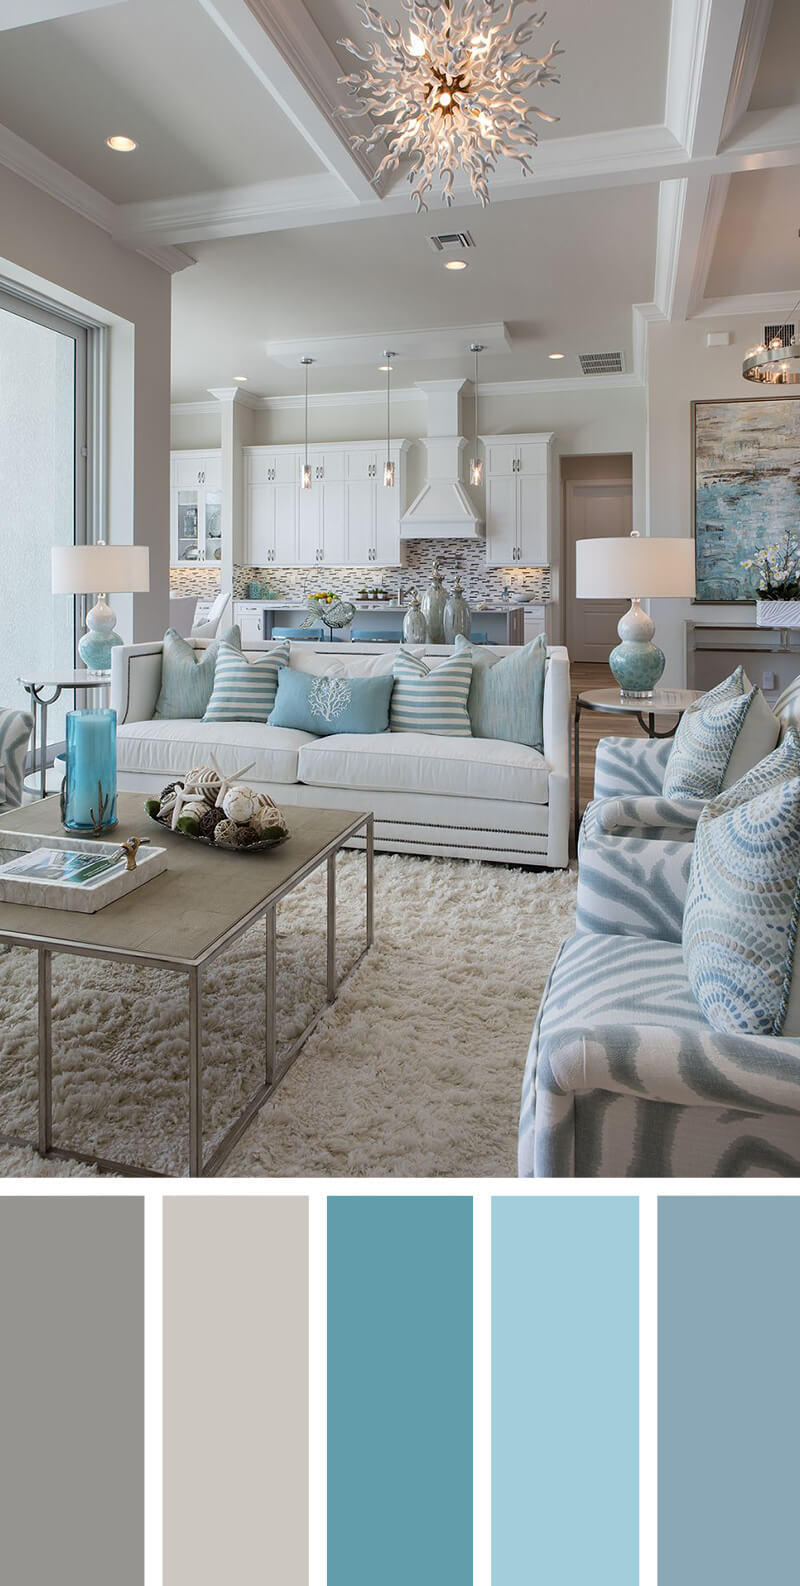 7 best living room color scheme ideas and designs for 2019 - Living room color ideas ...